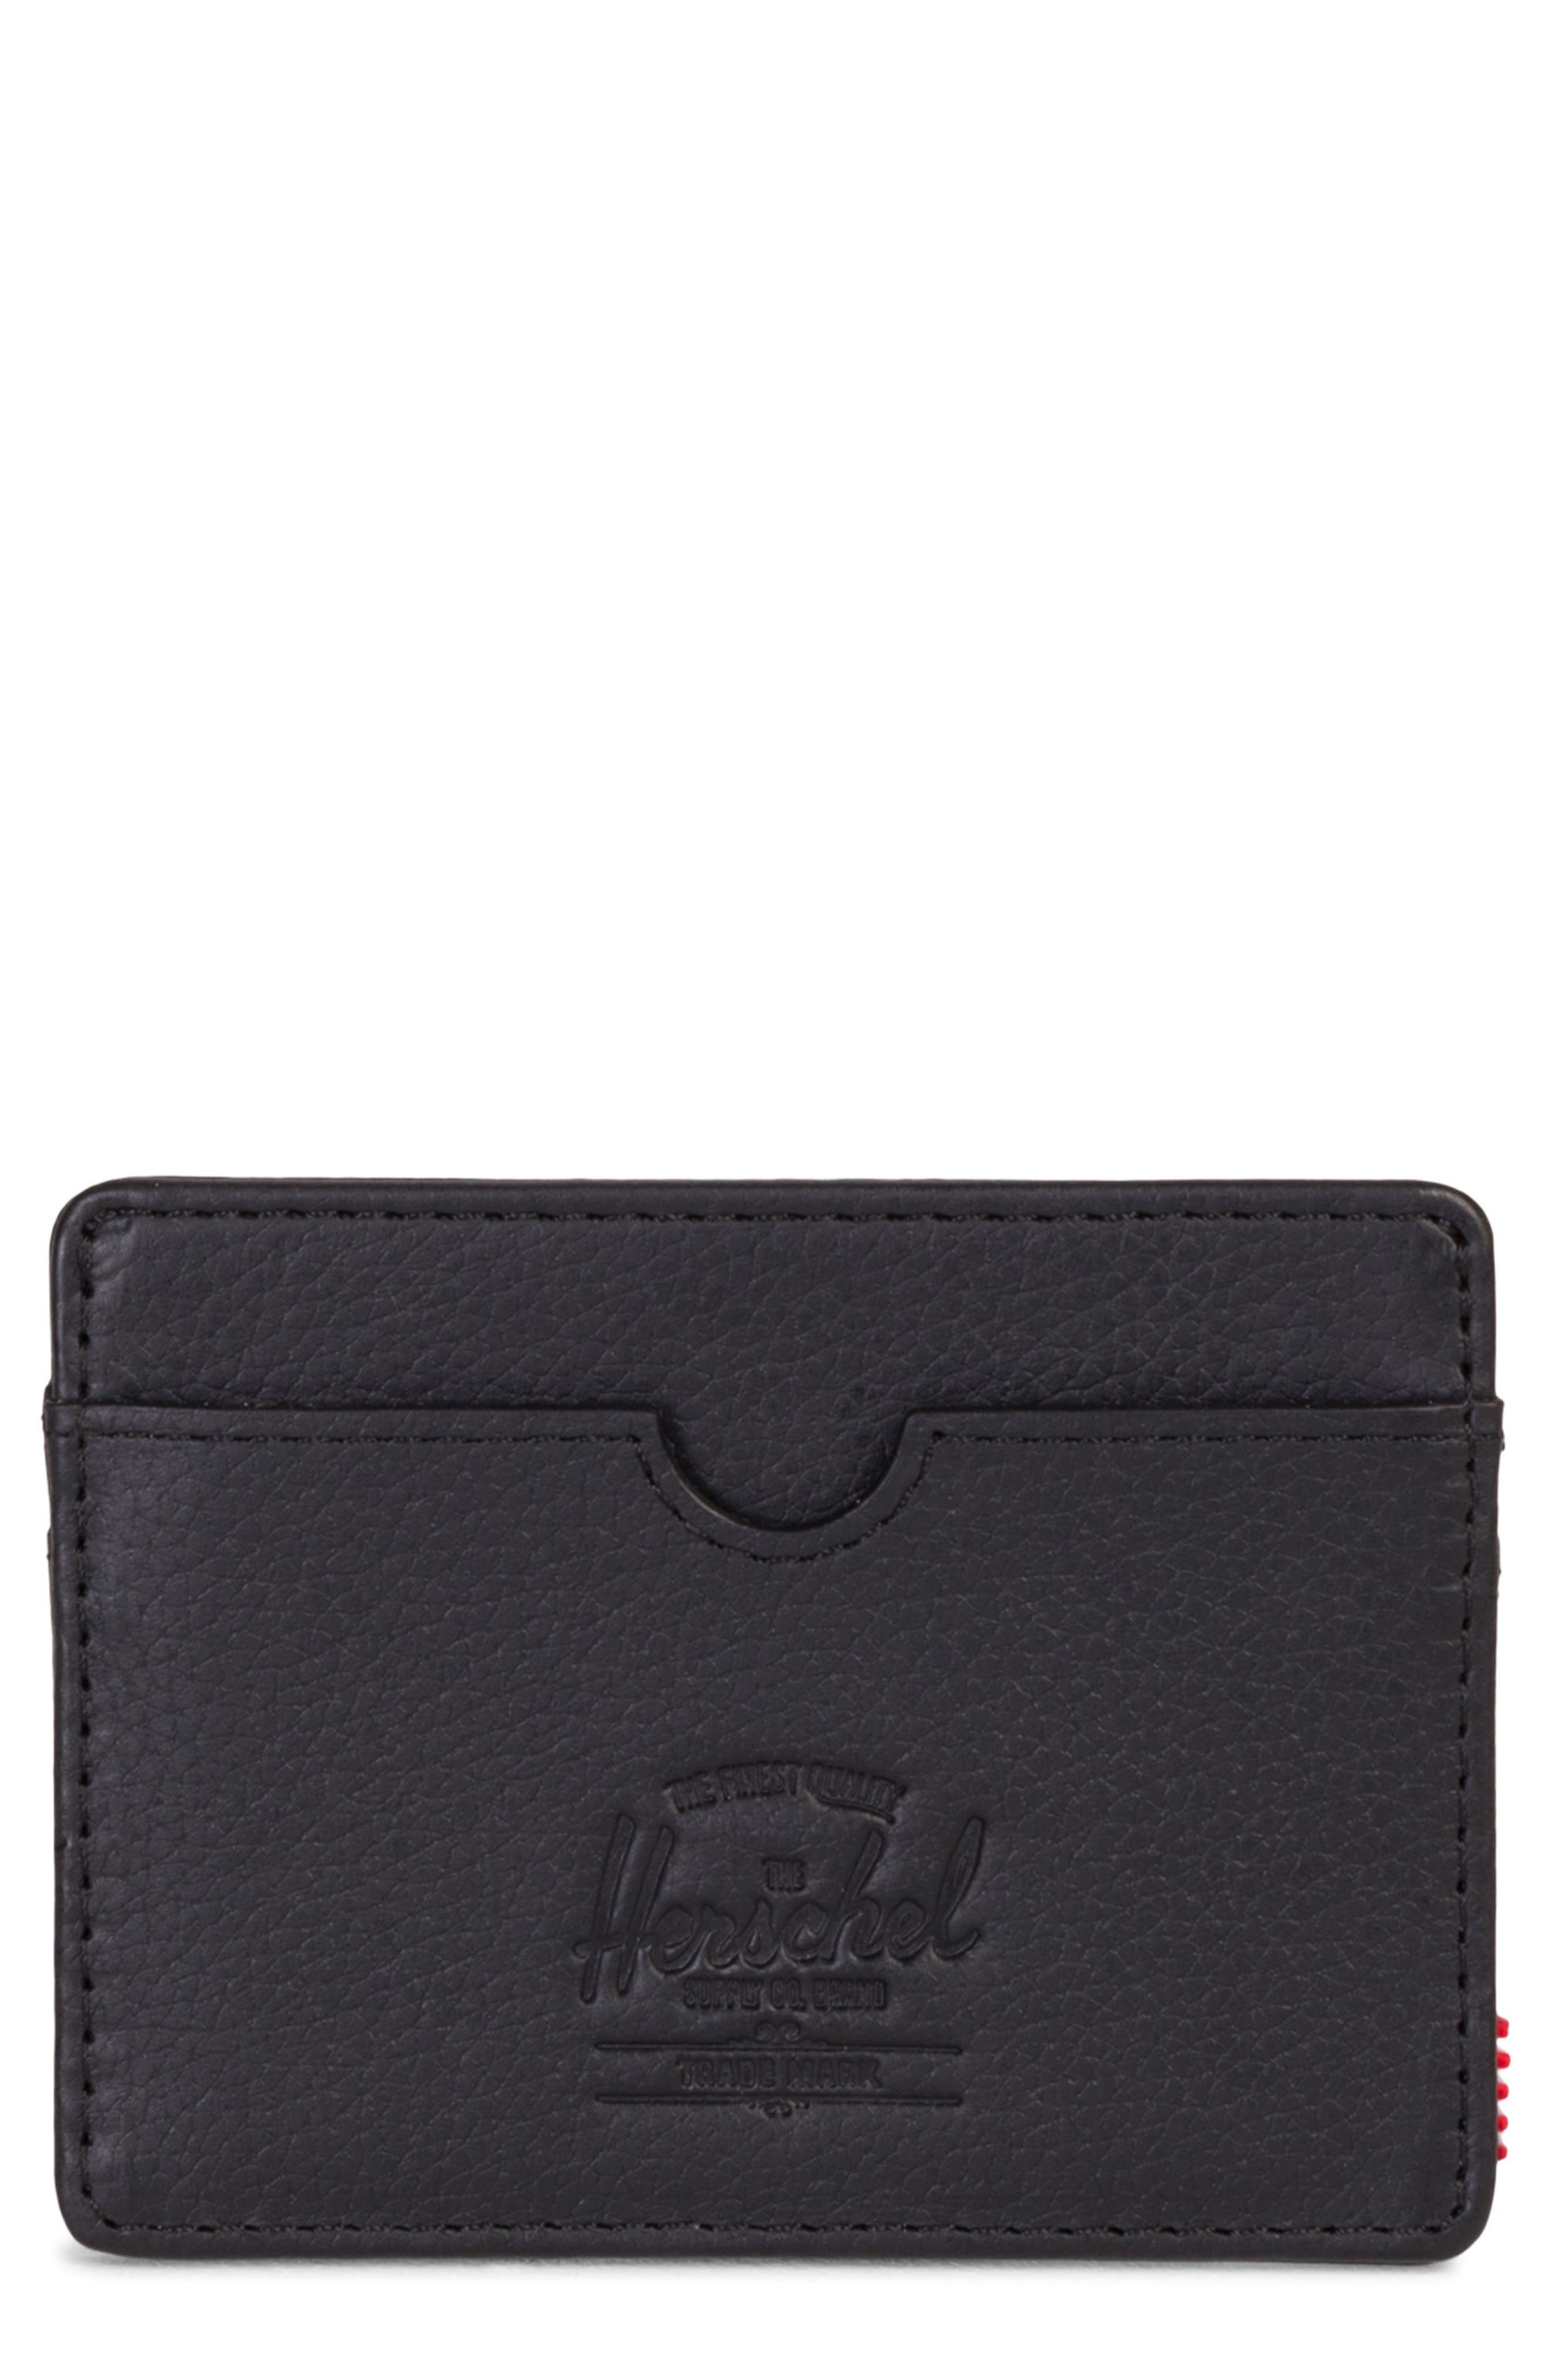 HERSCHEL SUPPLY CO. Charlie Leather RFID Card Case, Main, color, BLACK PEBBLED LEATHER